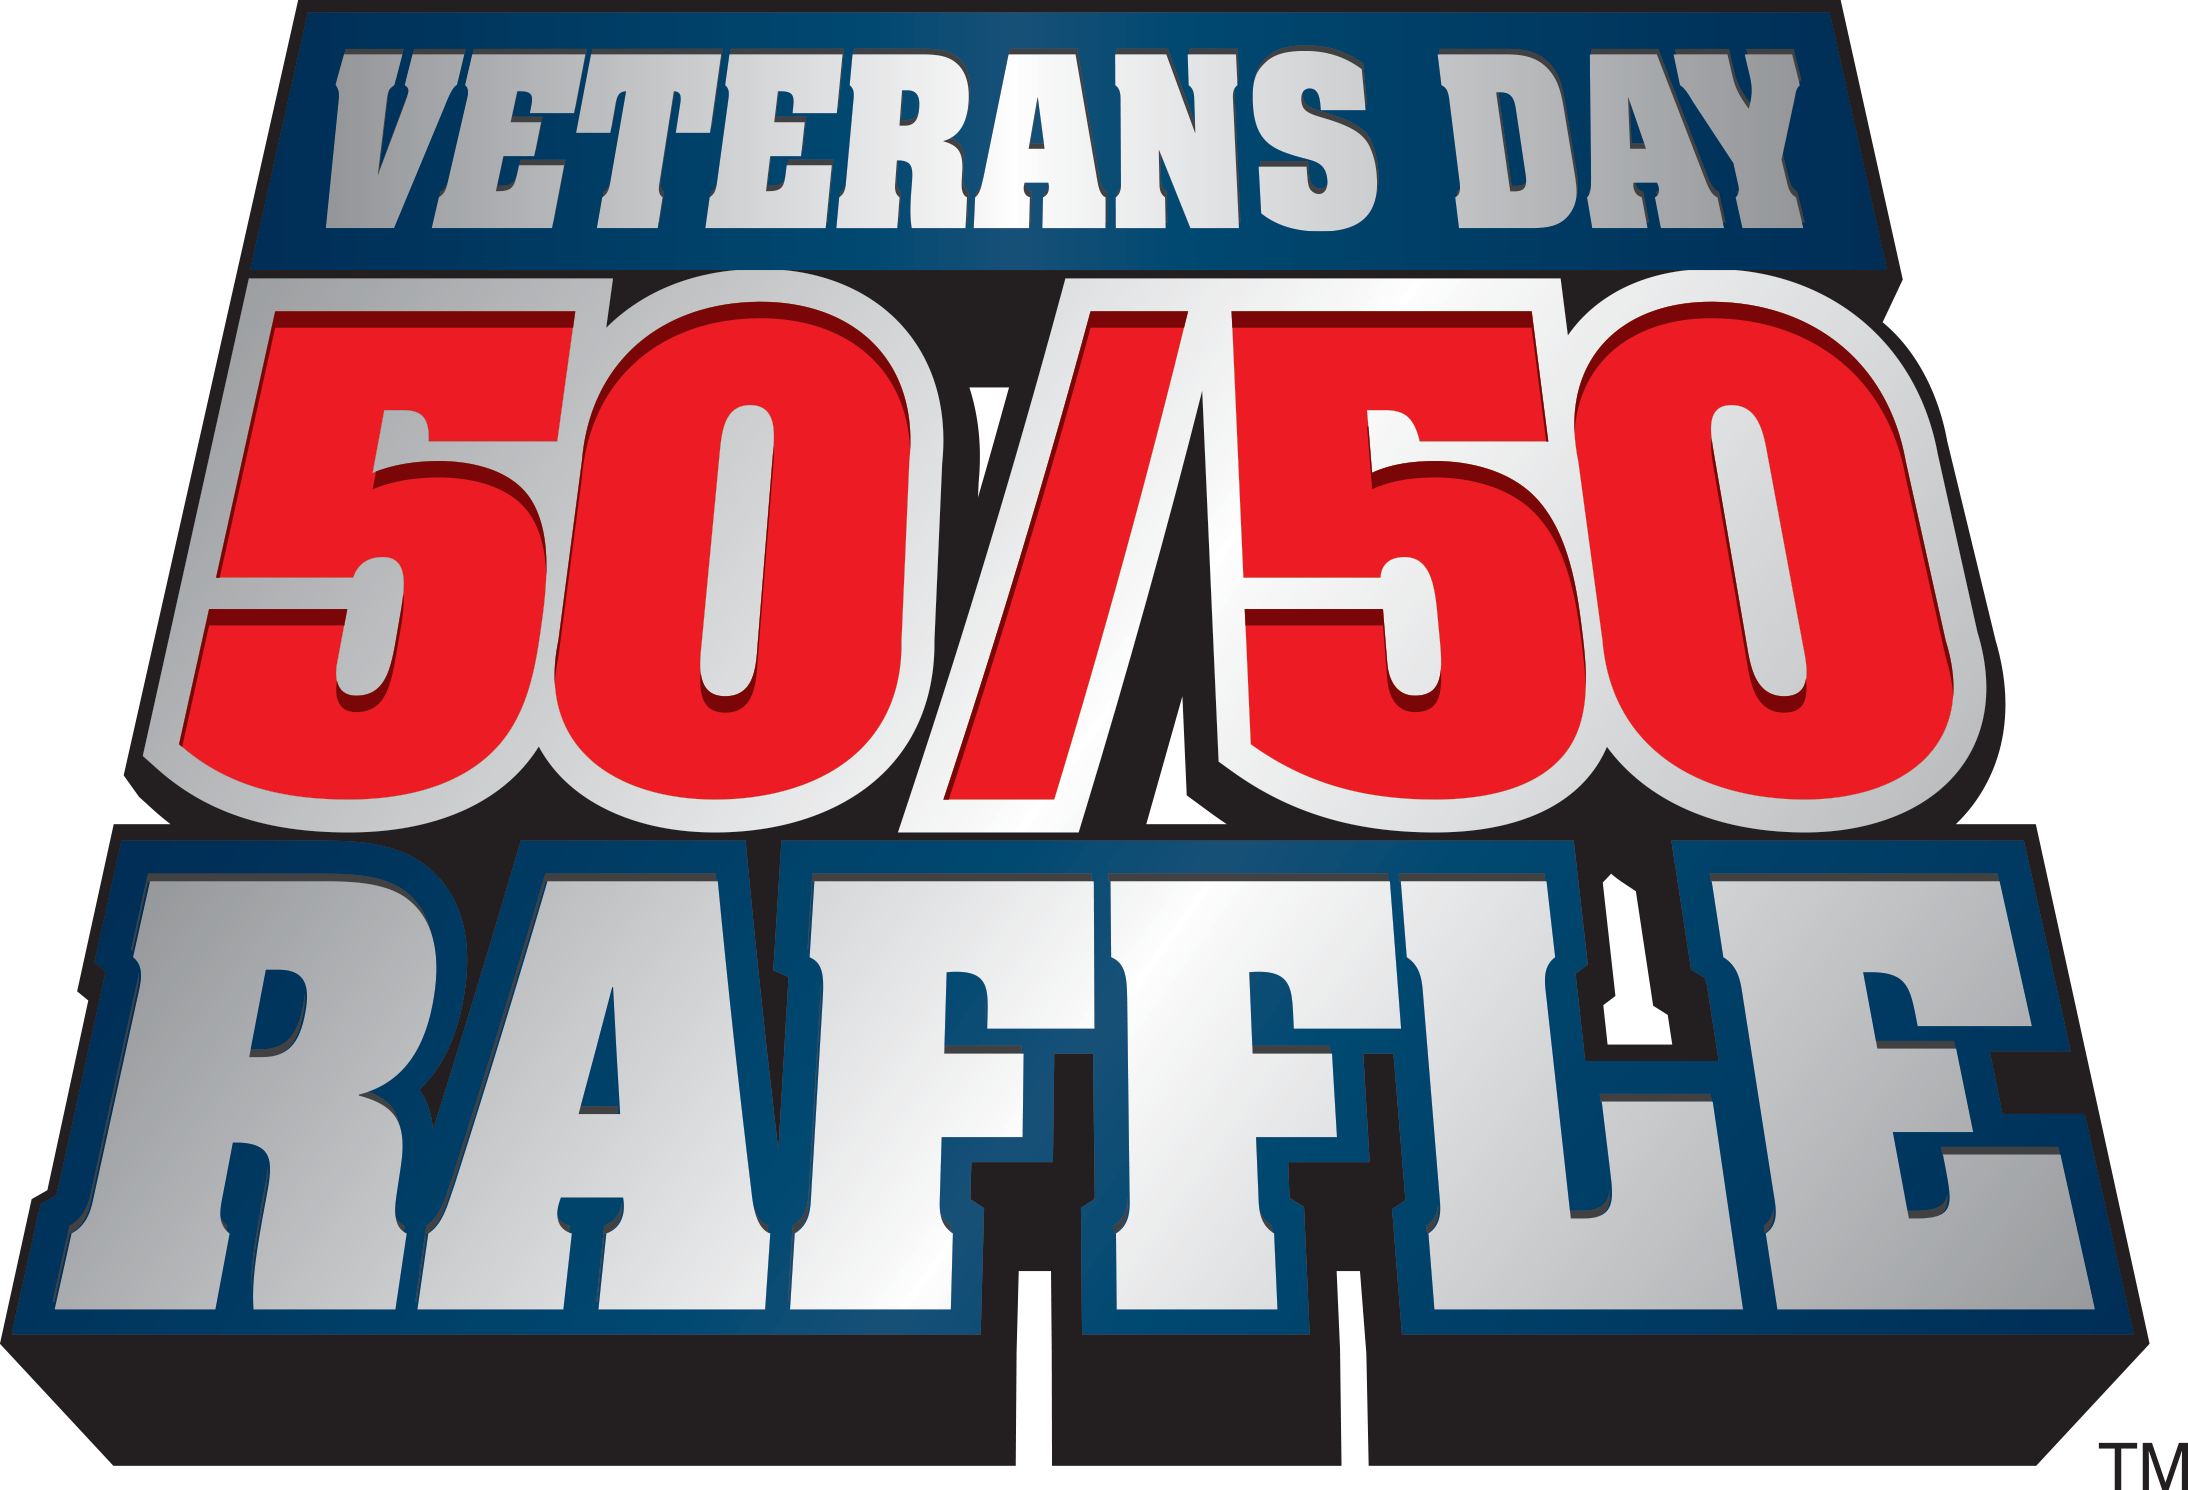 winning veterans day 50 50 raffle bonus drawing ticket bought in winning veterans day 50 50 raffle bonus drawing ticket bought in ottawa county